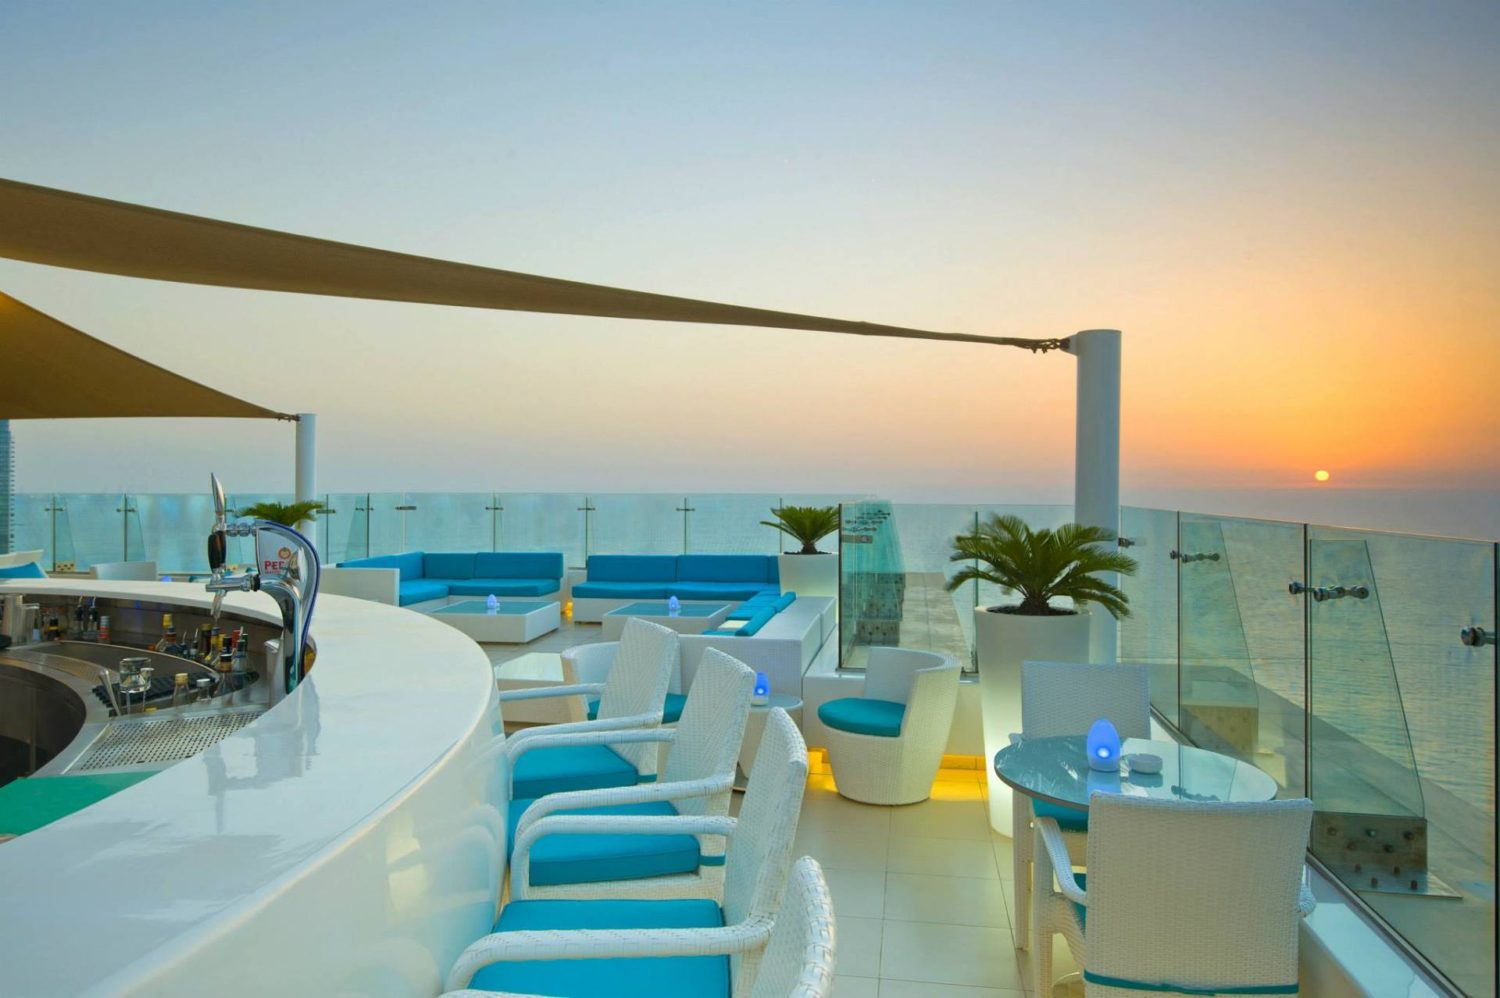 Best sky bars in Dubai: Pure Sky Lounge